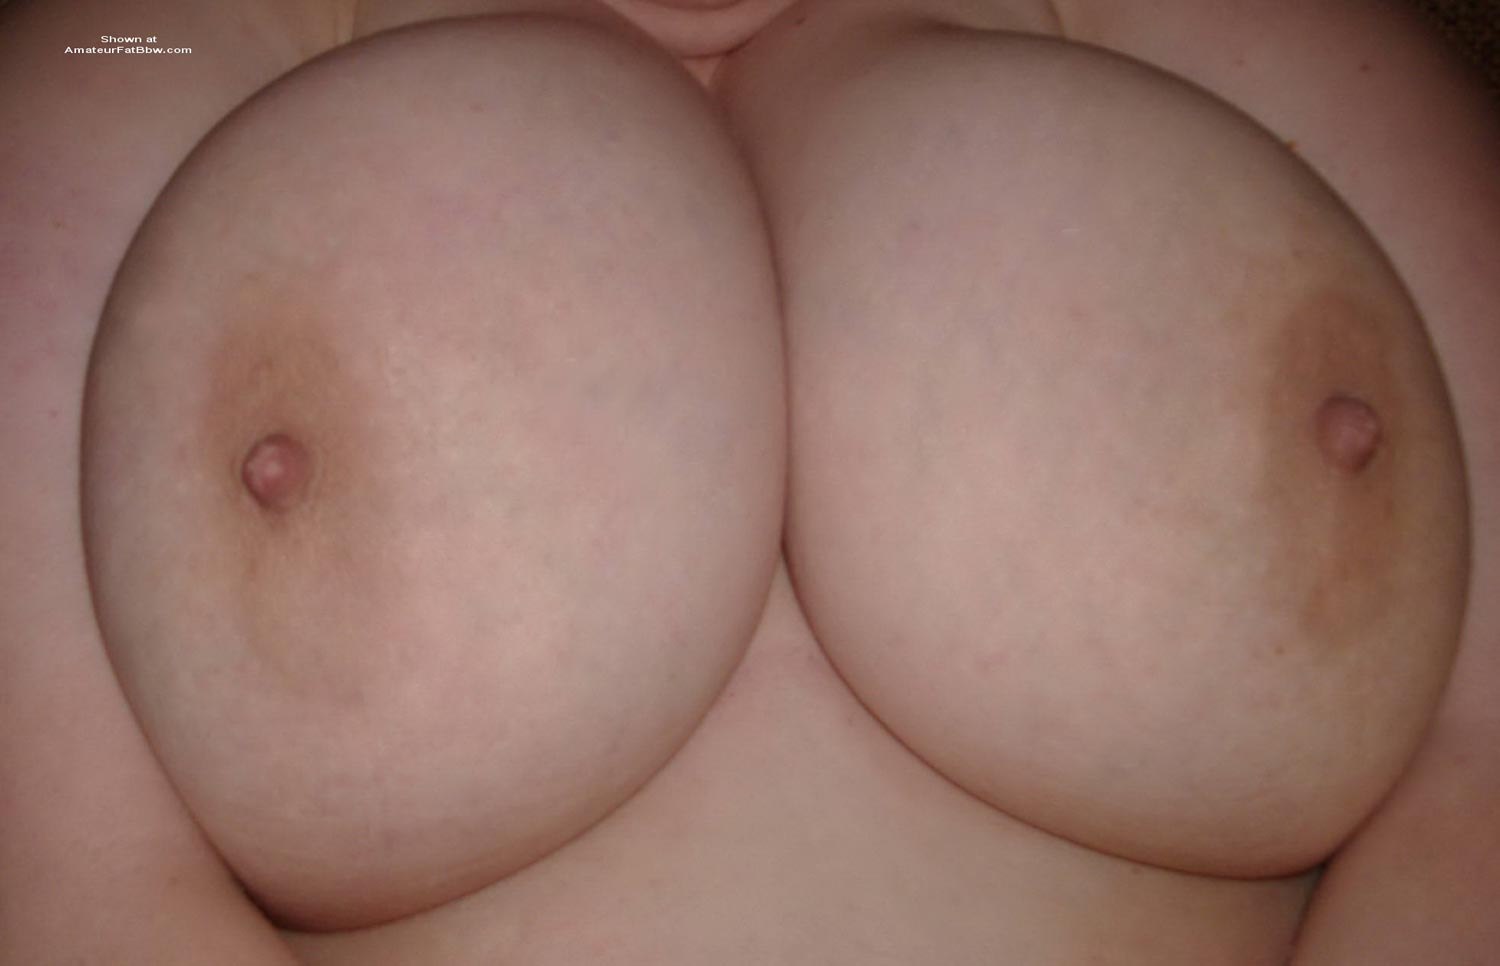 Those big boobs amateurs loe